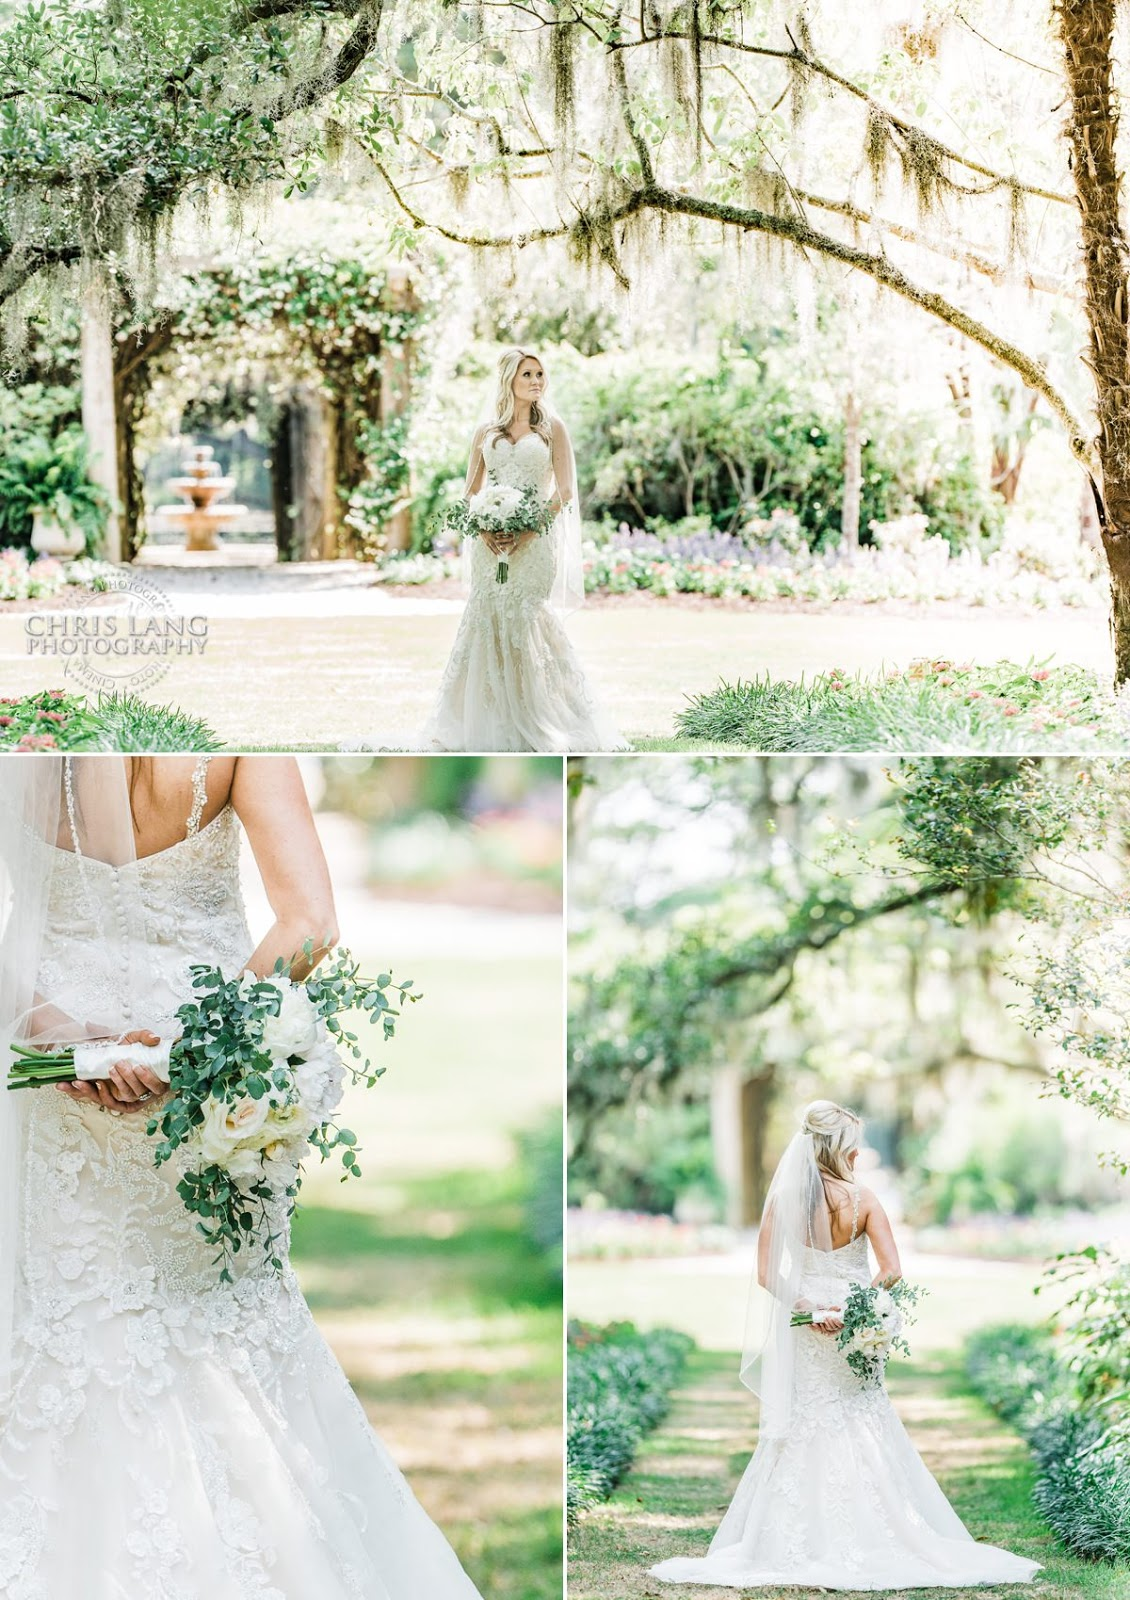 Airlie Gardens Weddings - Wilmington NC - image of Bride in wedding dress holding  wedding bouquet - Airlie gardens wedding photographers